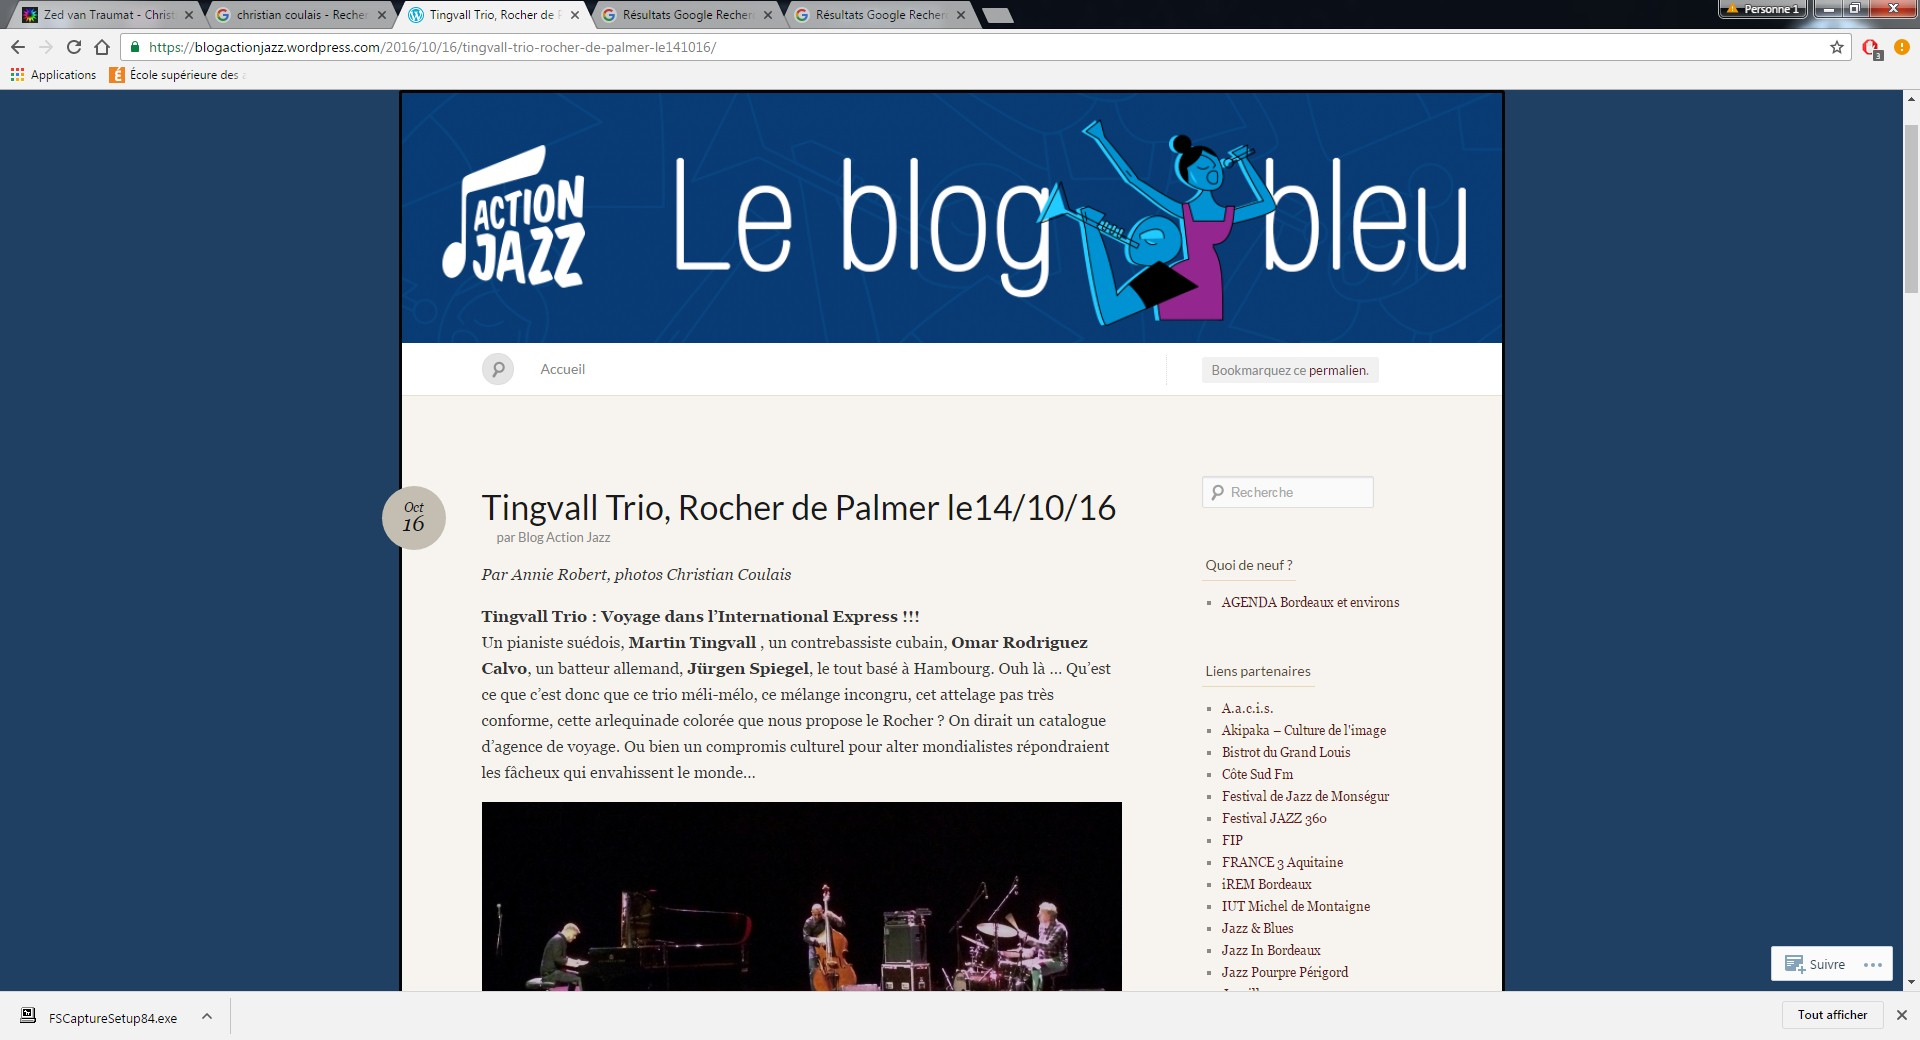 Tingvall Trio, Action Jazz, 14 octobre 2016